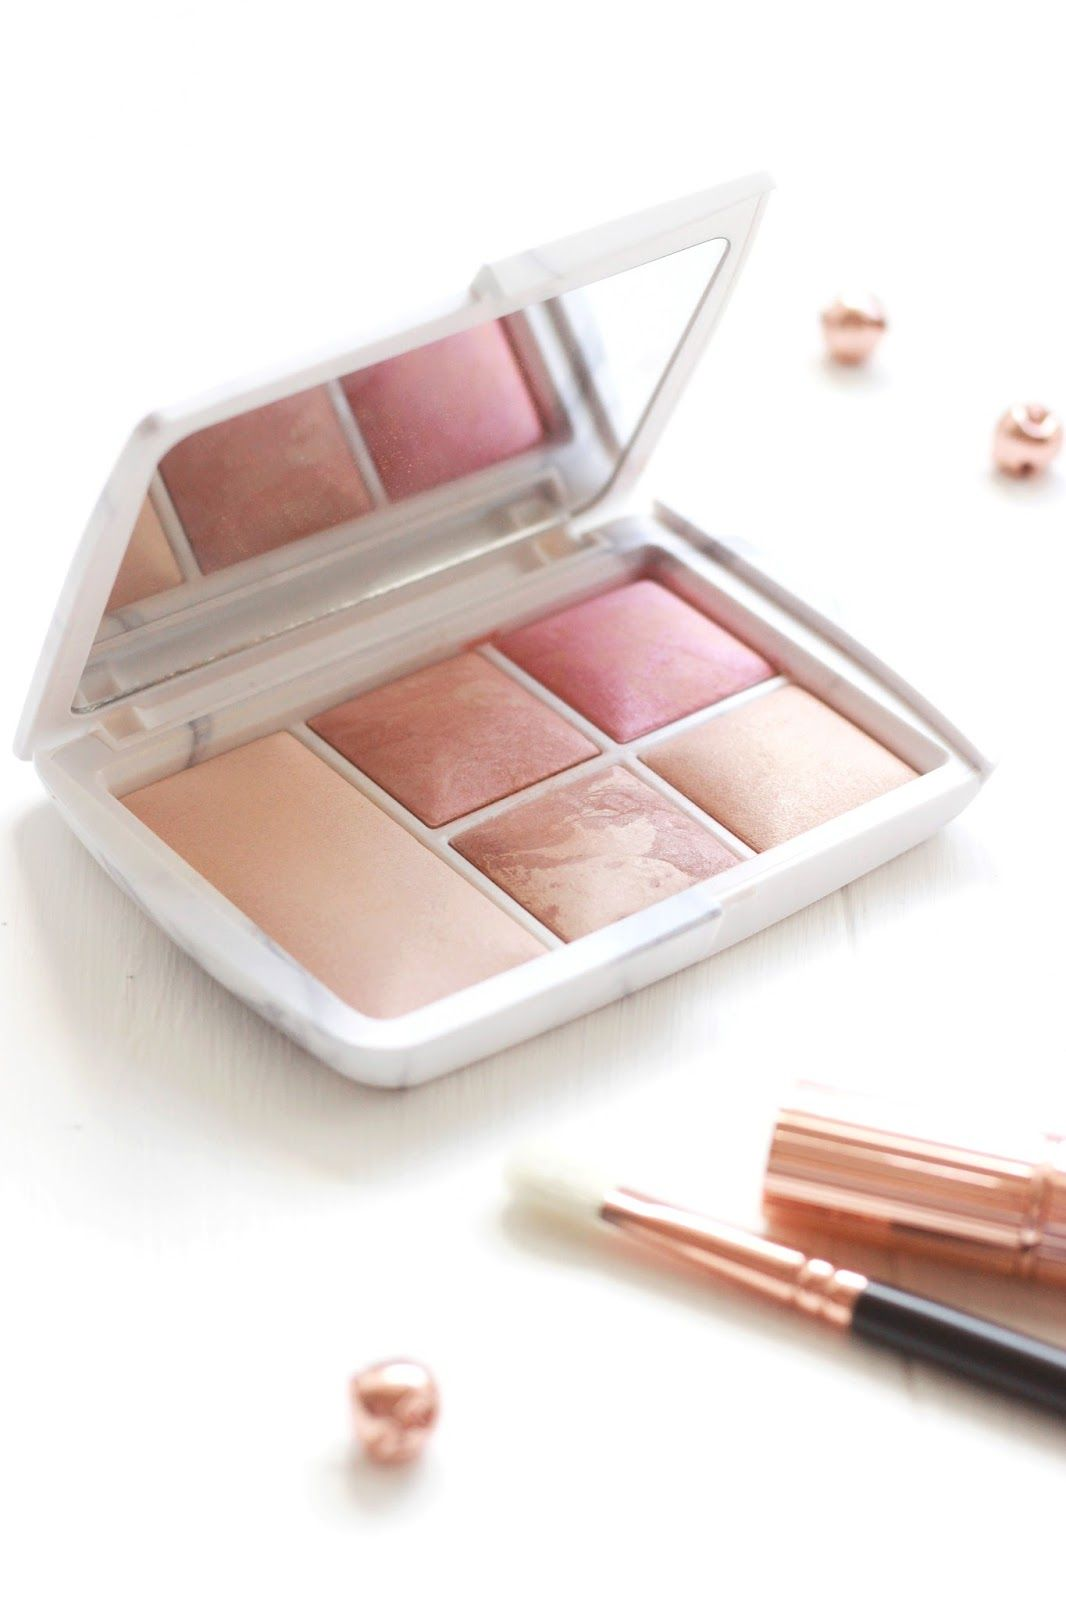 Hourglass Ambient Surreal Light Palette